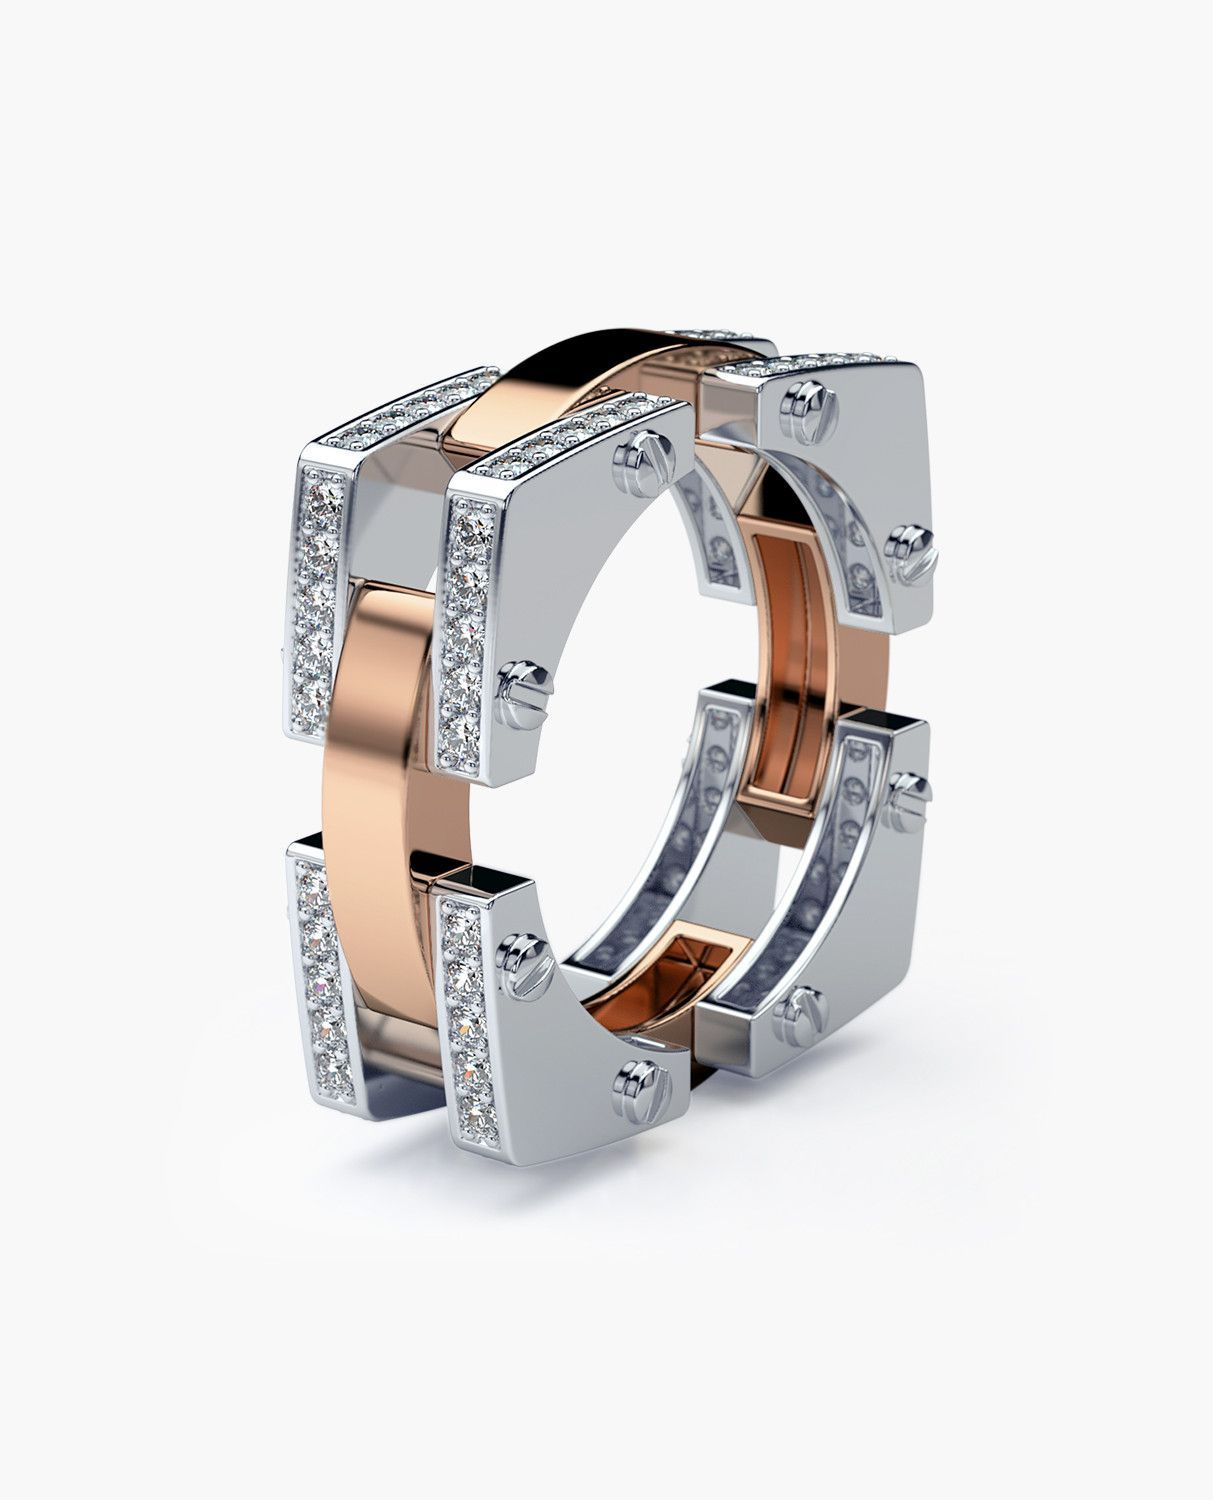 BINGHAM Mens TwoTone Gold Wedding Band with 1.05ct